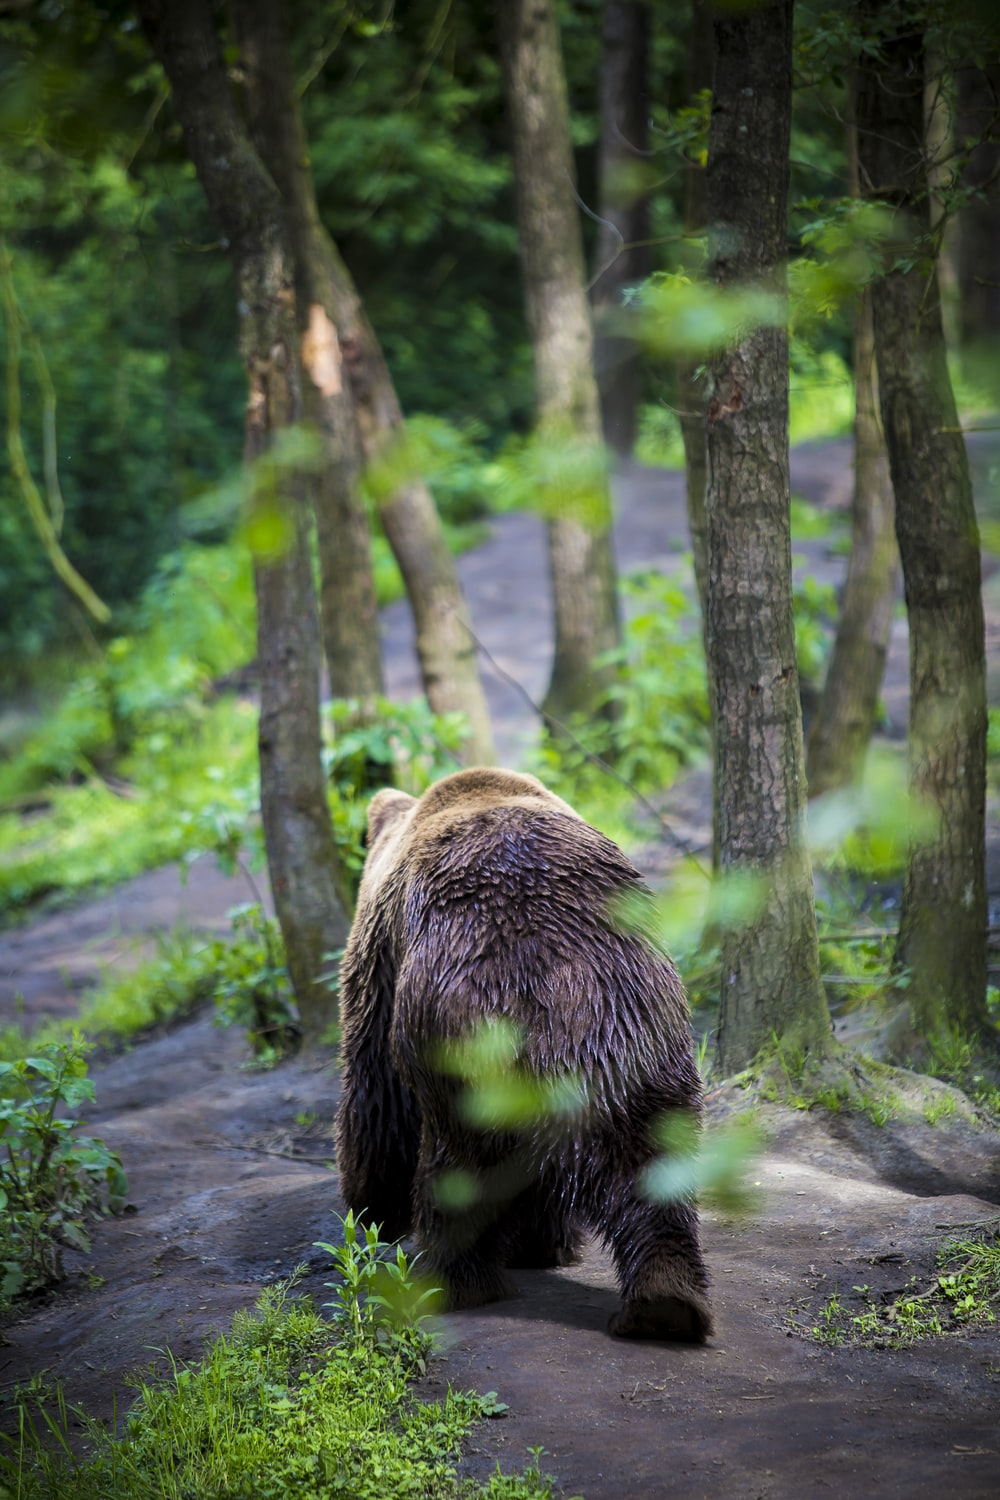 grizzly bear walking in the forest at daytime